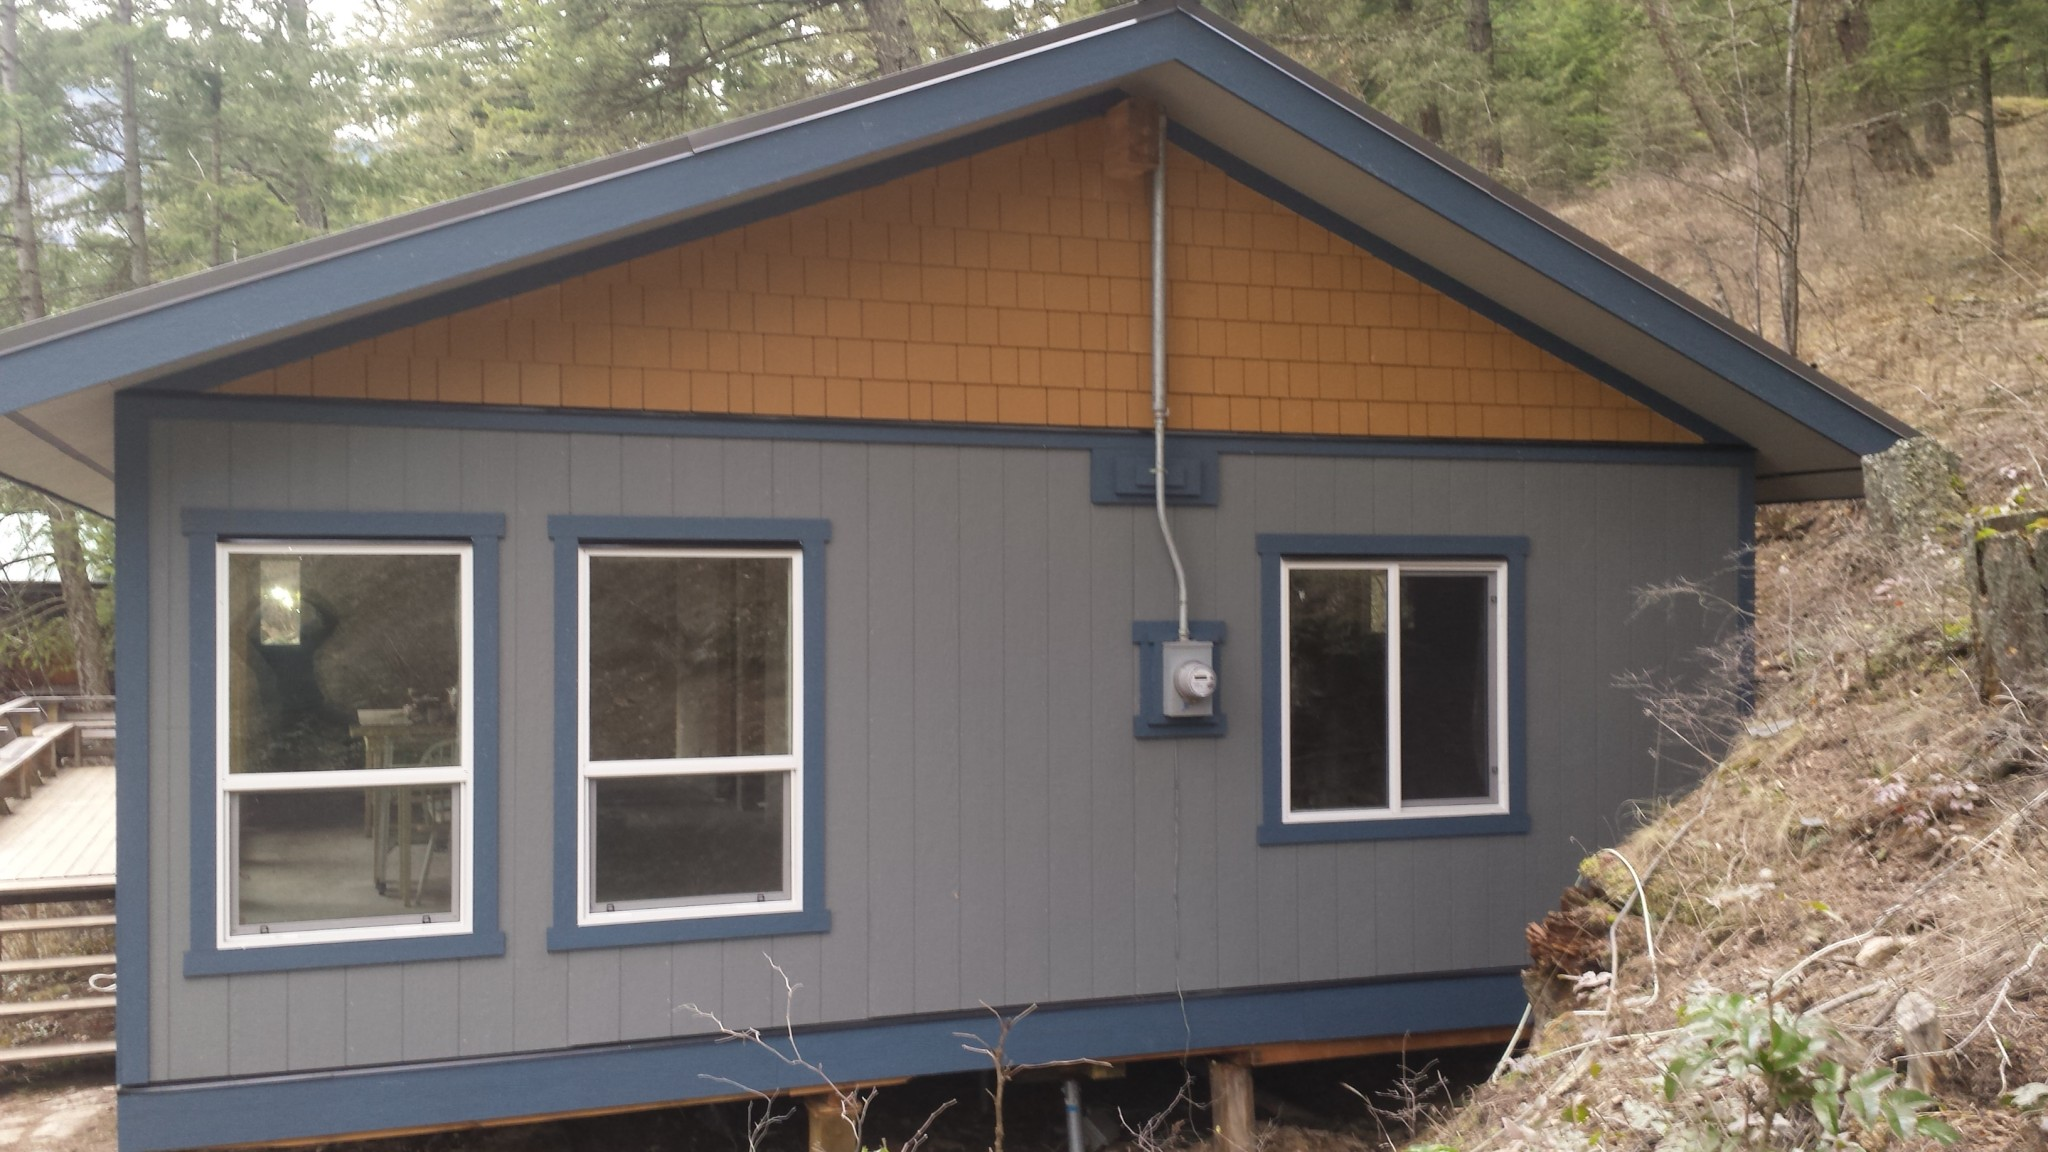 Cabins Outdoor Home Renovations Md Creations Ltd